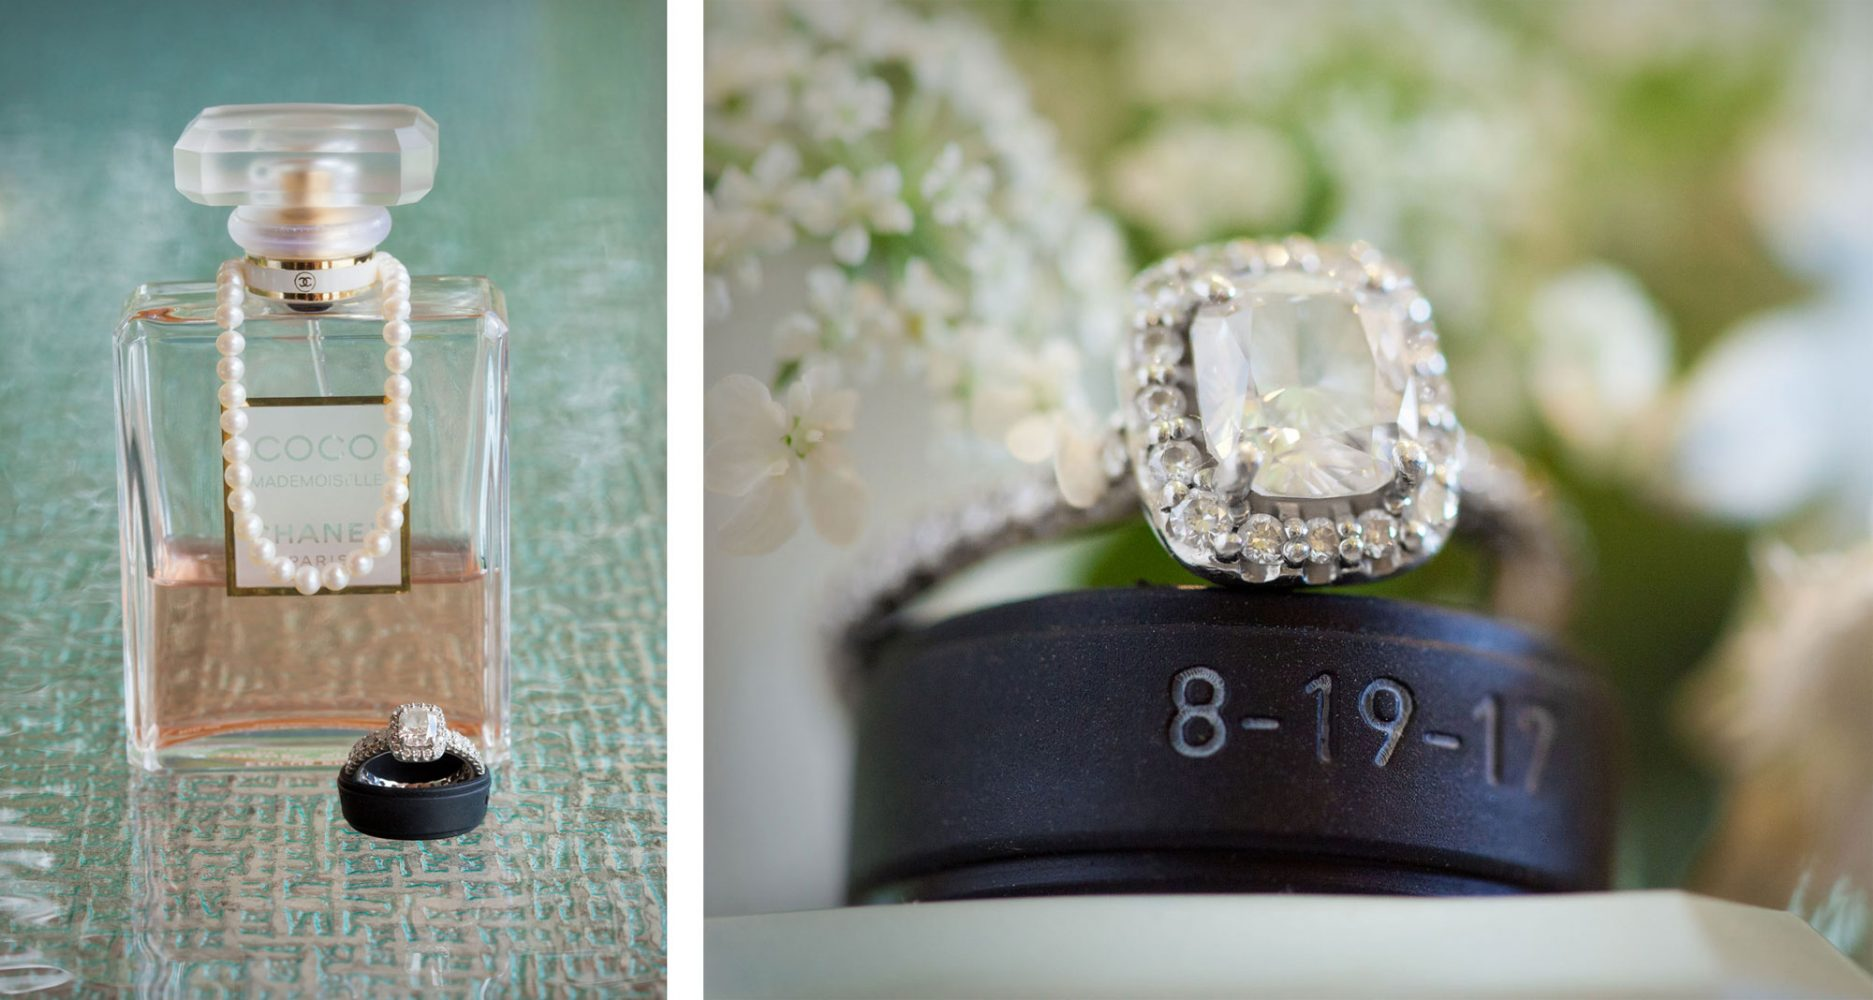 Ring and COCO channel perfume from a Backyard wedding in Durango, Colorado